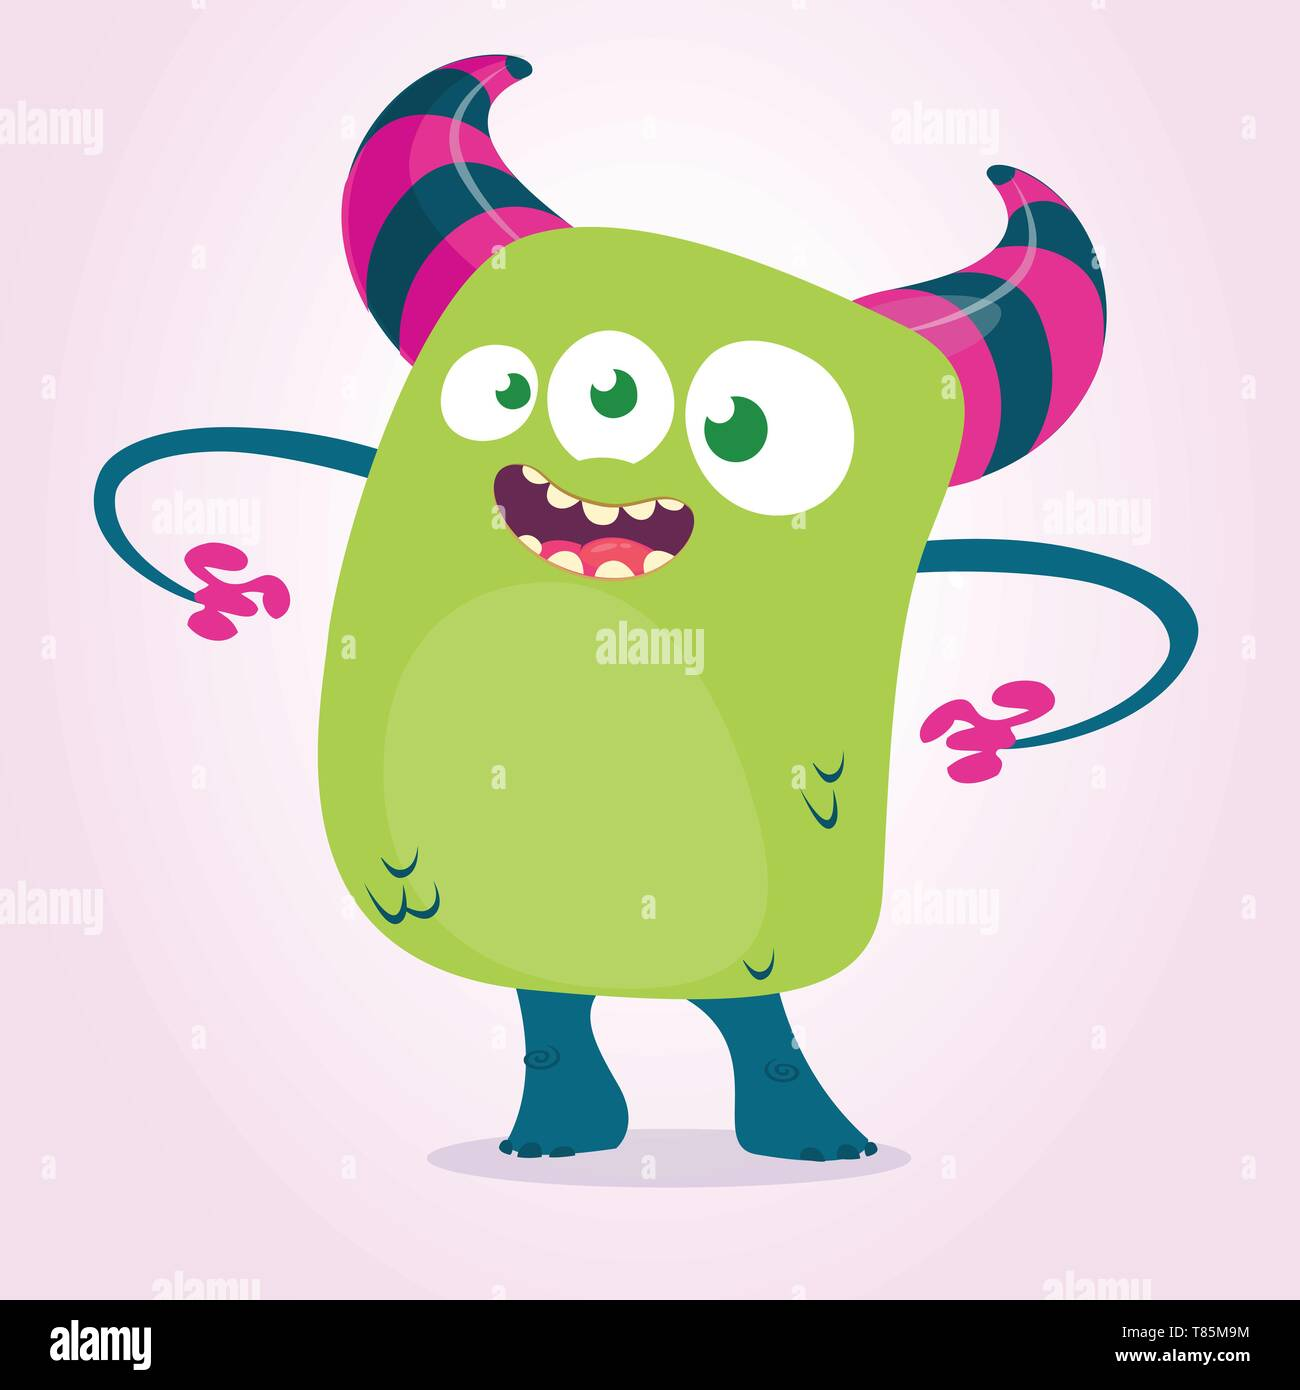 Cute cartoon  monster with hornsand three eyes. Vector illustration - Stock Image